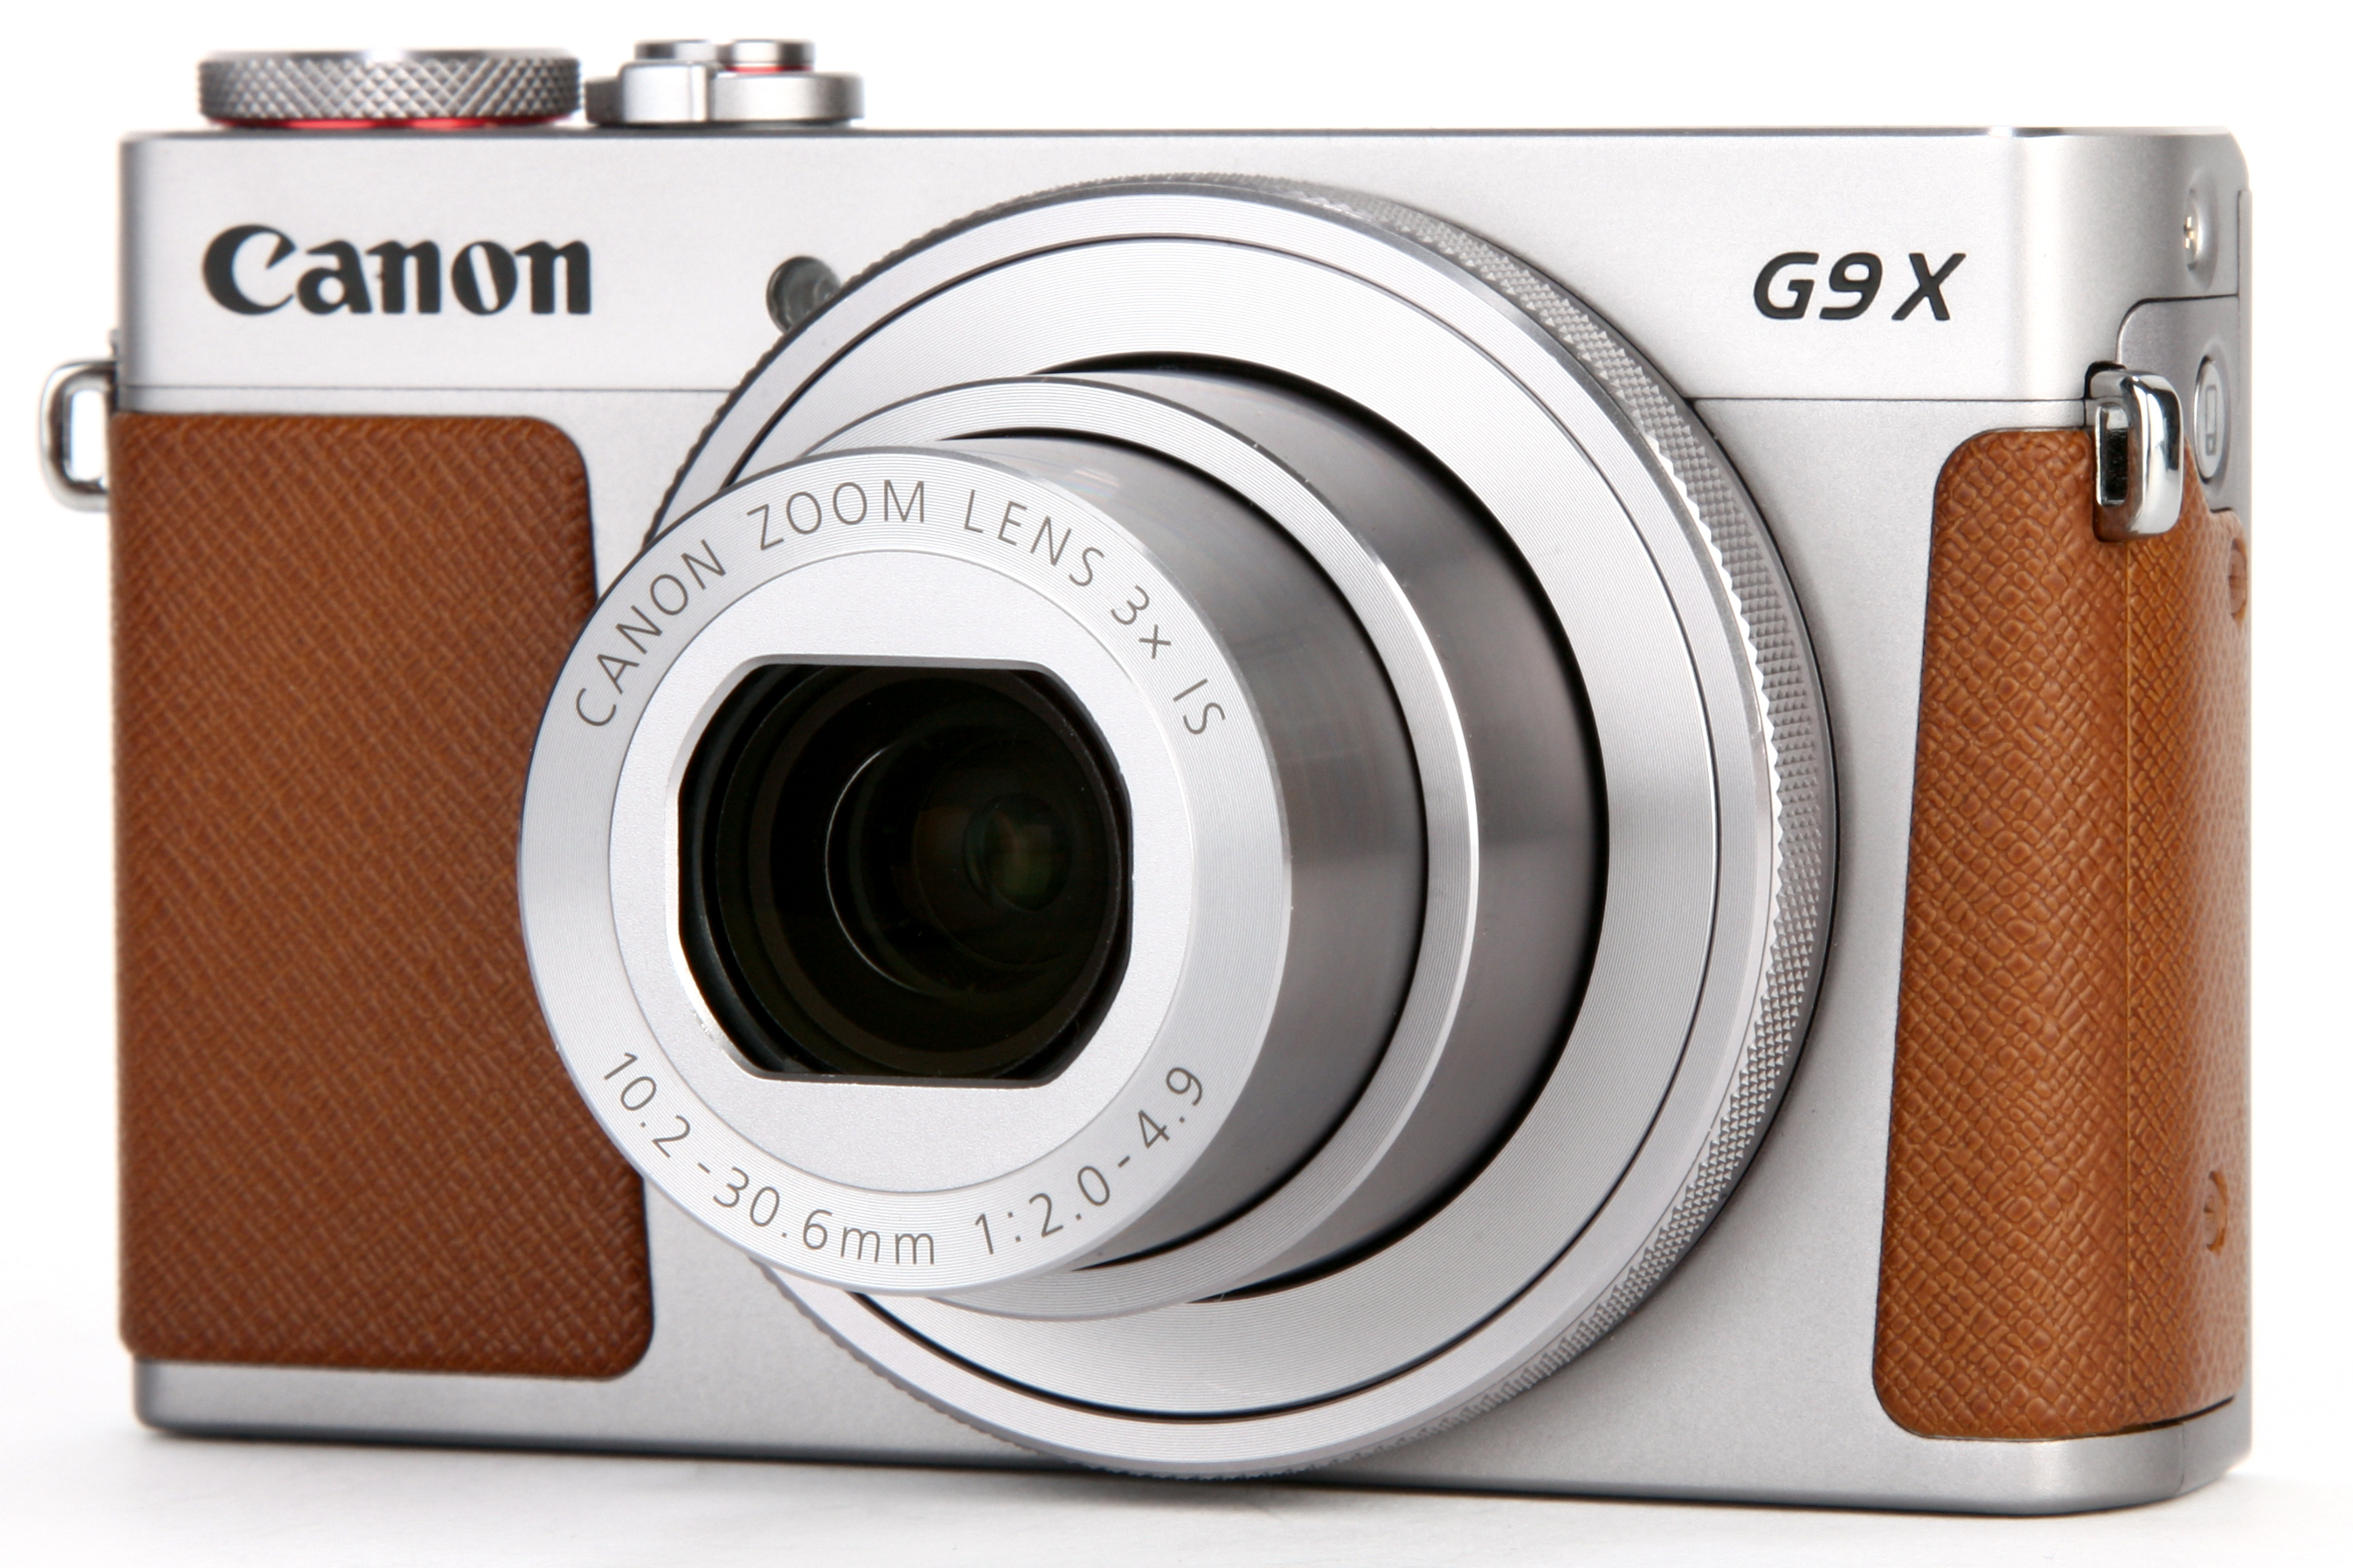 Canon PowerShot G9 X review